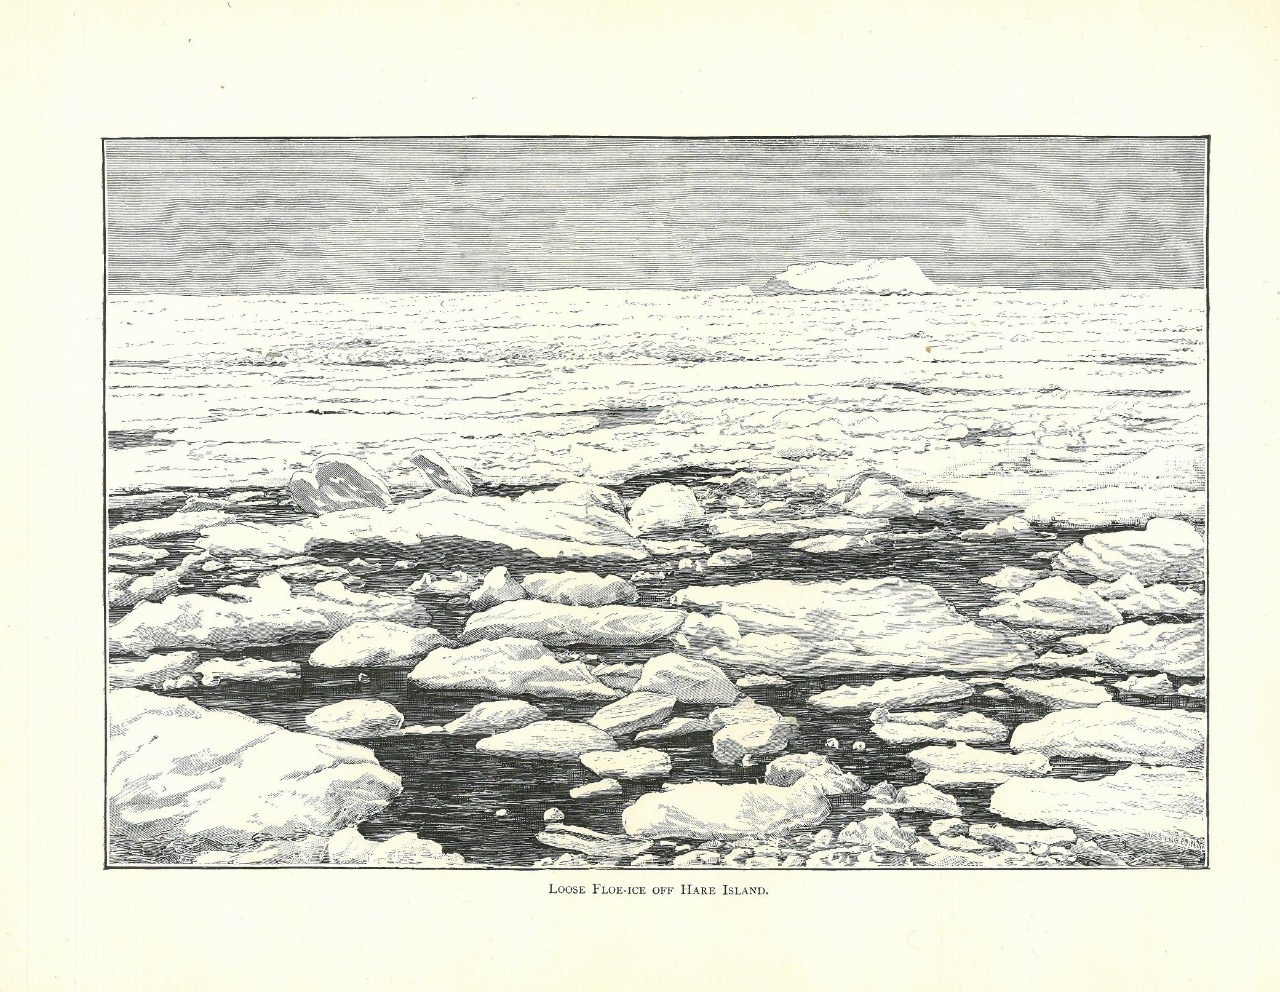 Loose Floe-Ice Off Hare Island.